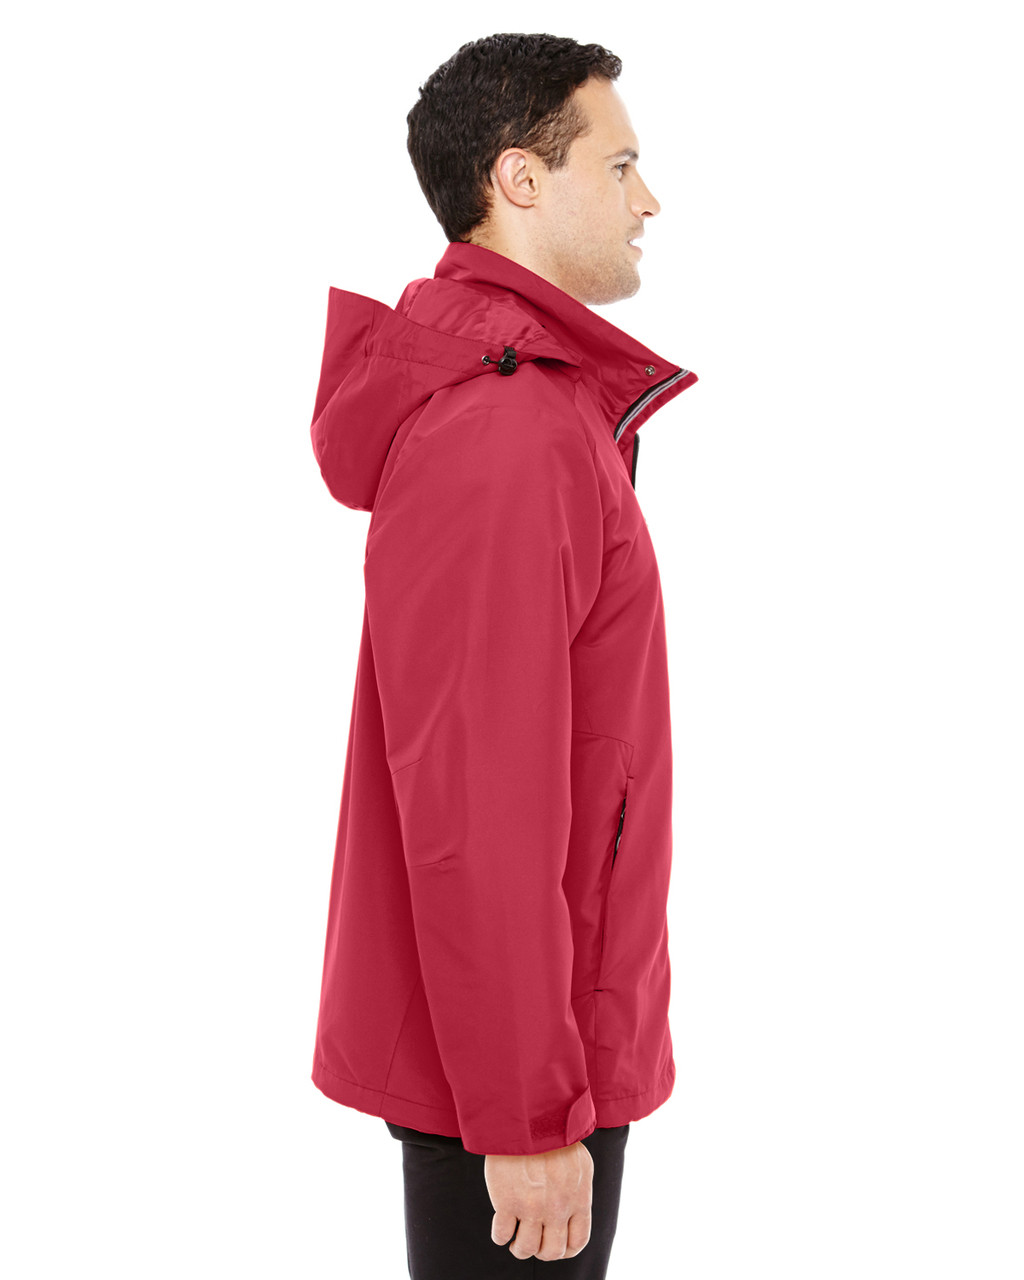 Classic Red/Black-side 88226 North End Men's Insight Interactive Shell Jacket | Blankclothing.ca